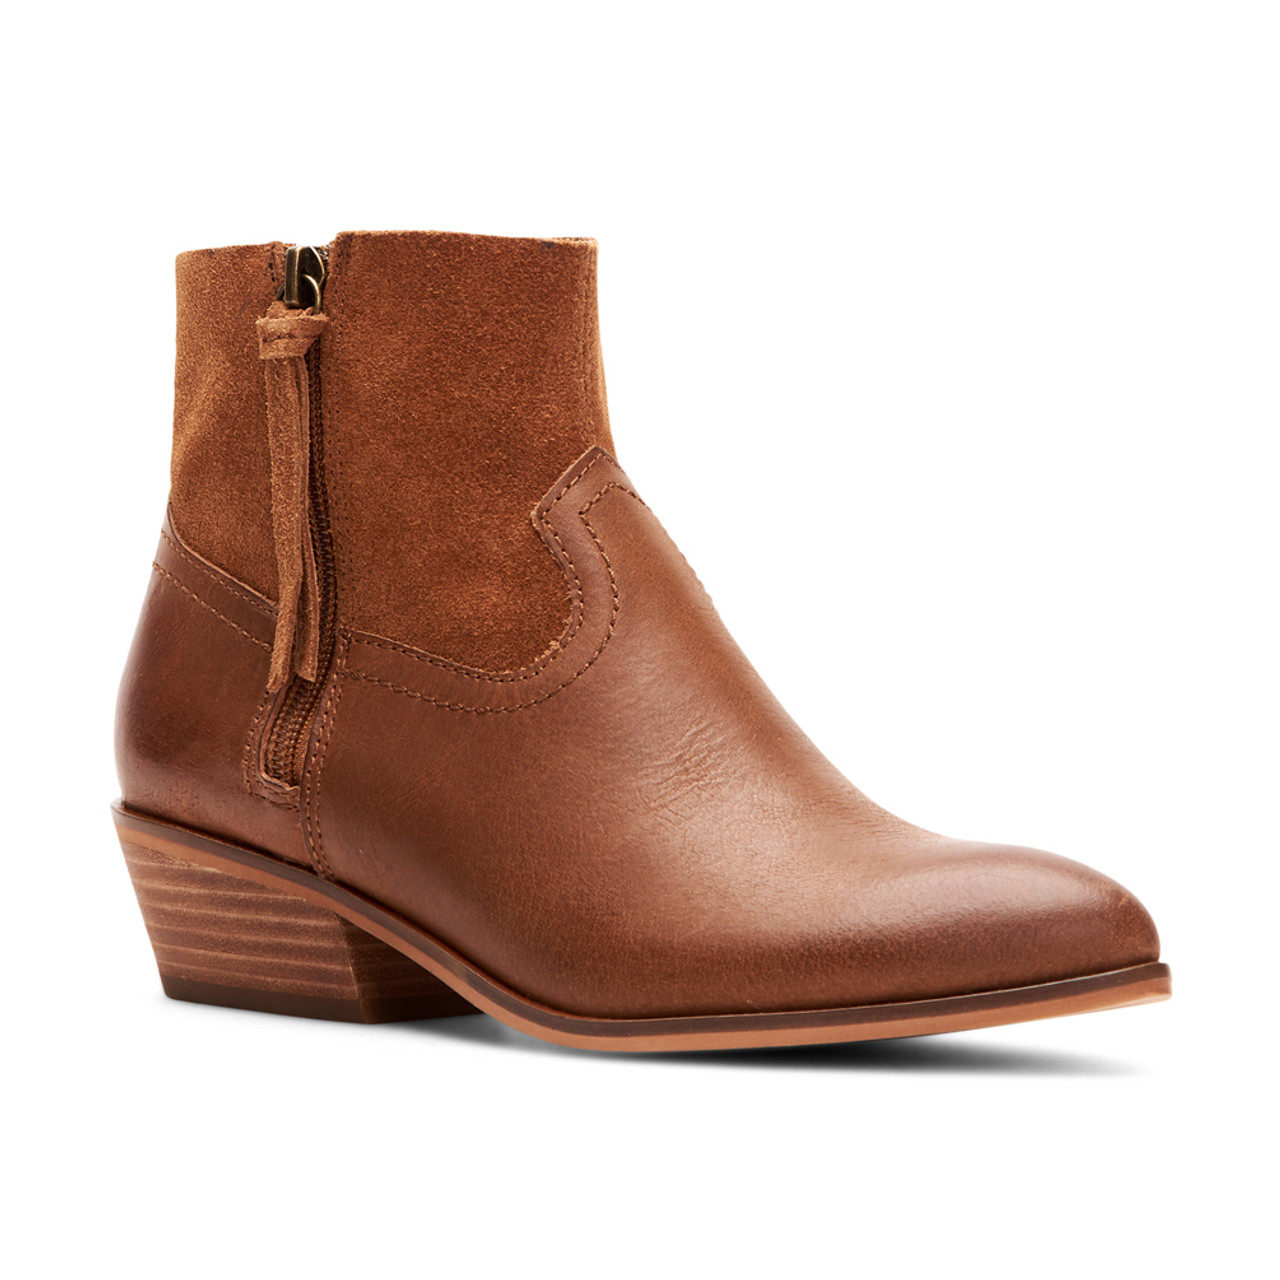 FRYE AND CO Rubie Zip Booties ** FREE SHIPPING **